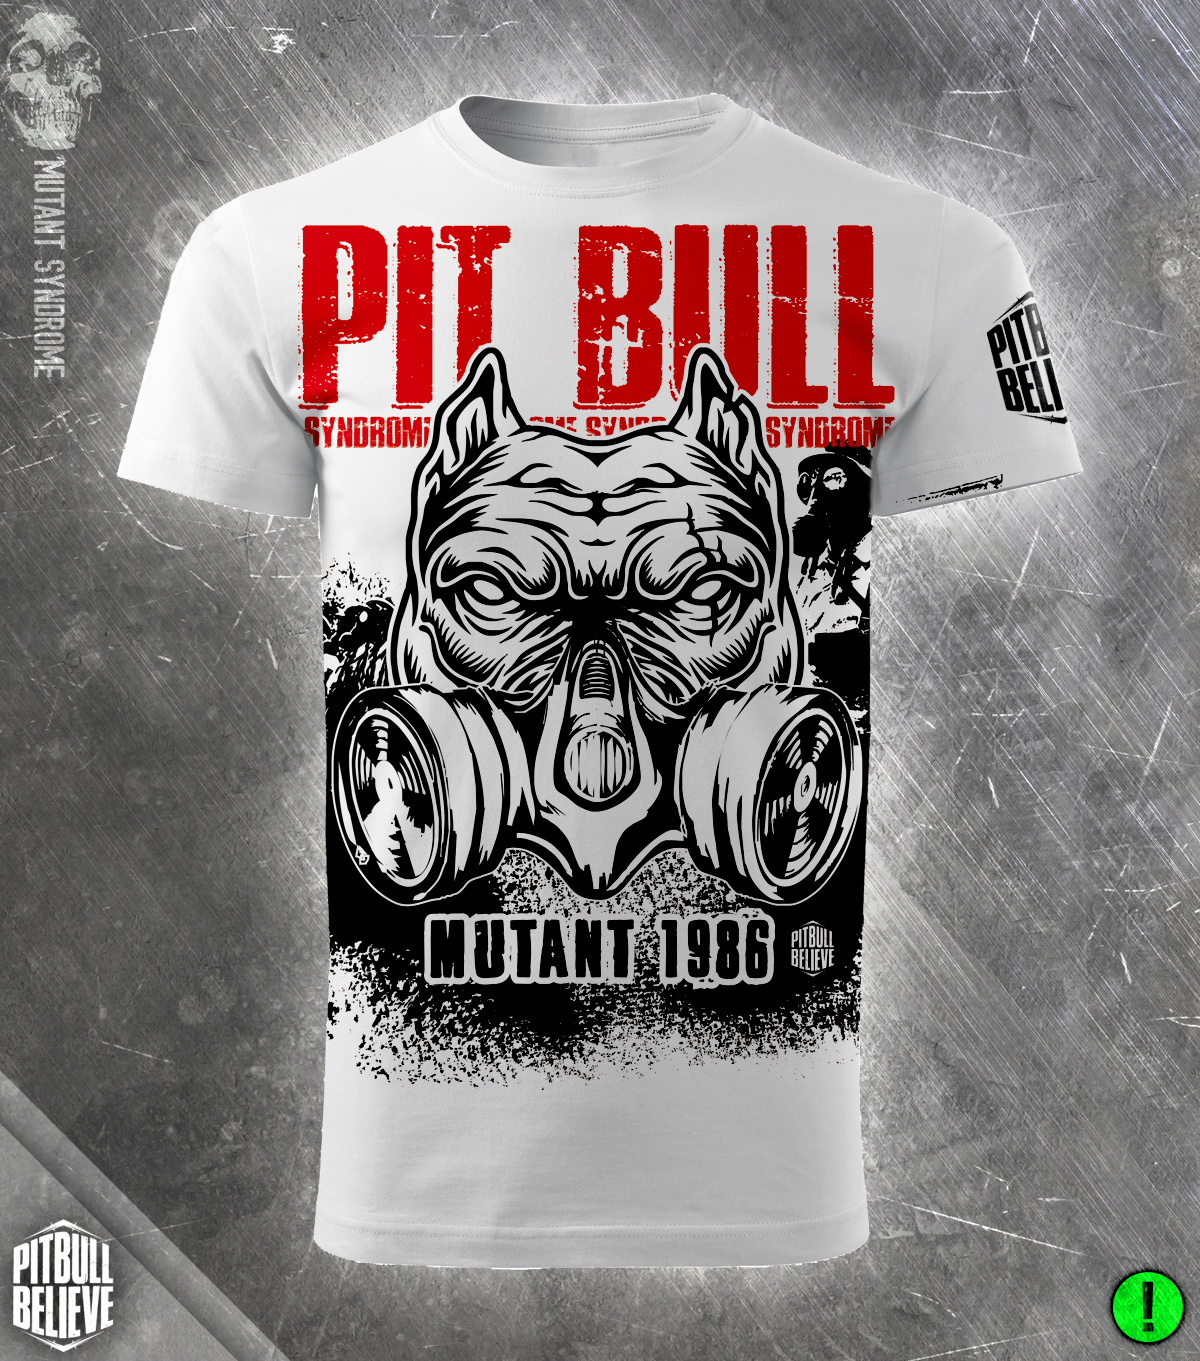 Pit Bull Believe [Mutant Syndrome] póló